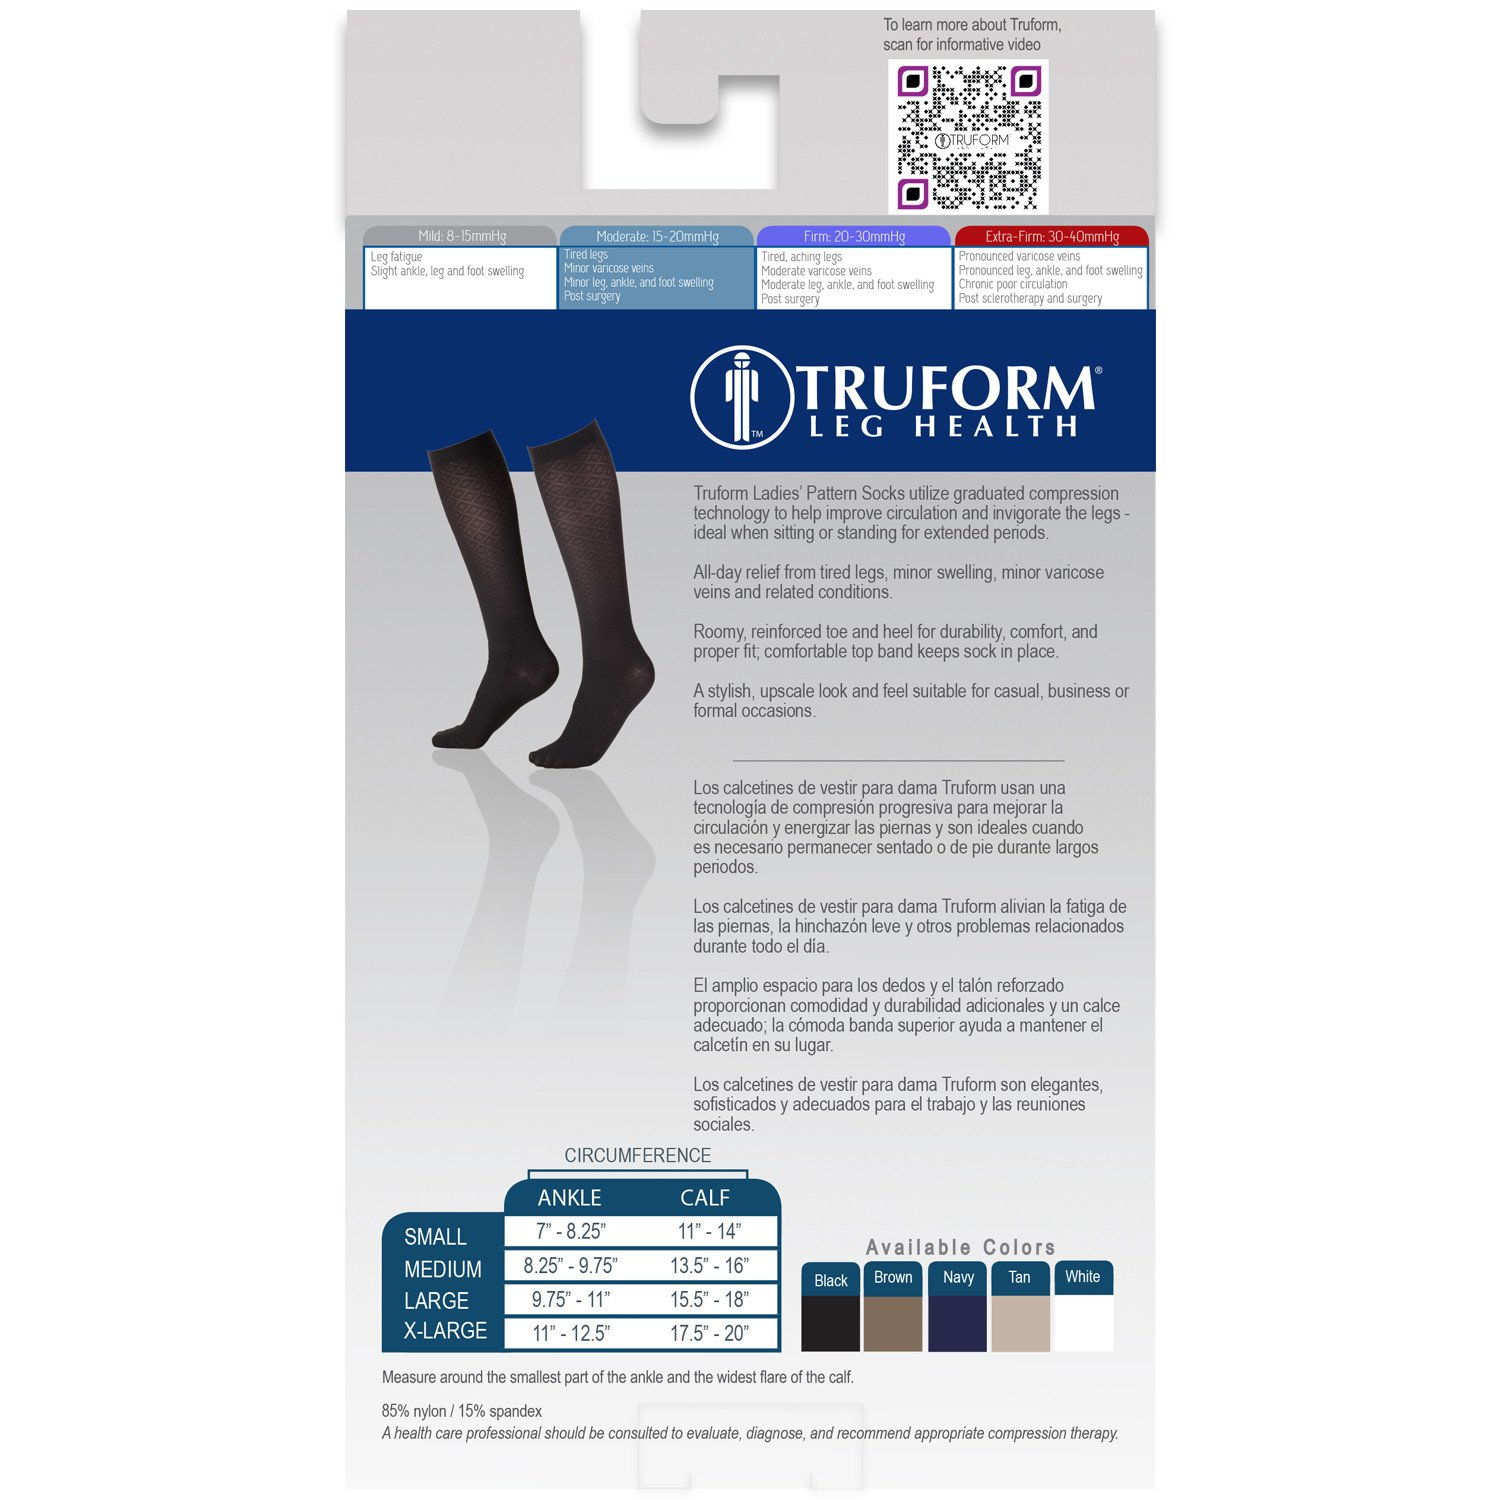 Amazon.com: Truform 1976 Womens Trouser Socks, Dress Style, Diamond Pattern: 15-20 mmHg, Black, X-Large (Pack of 2): Health & Personal Care